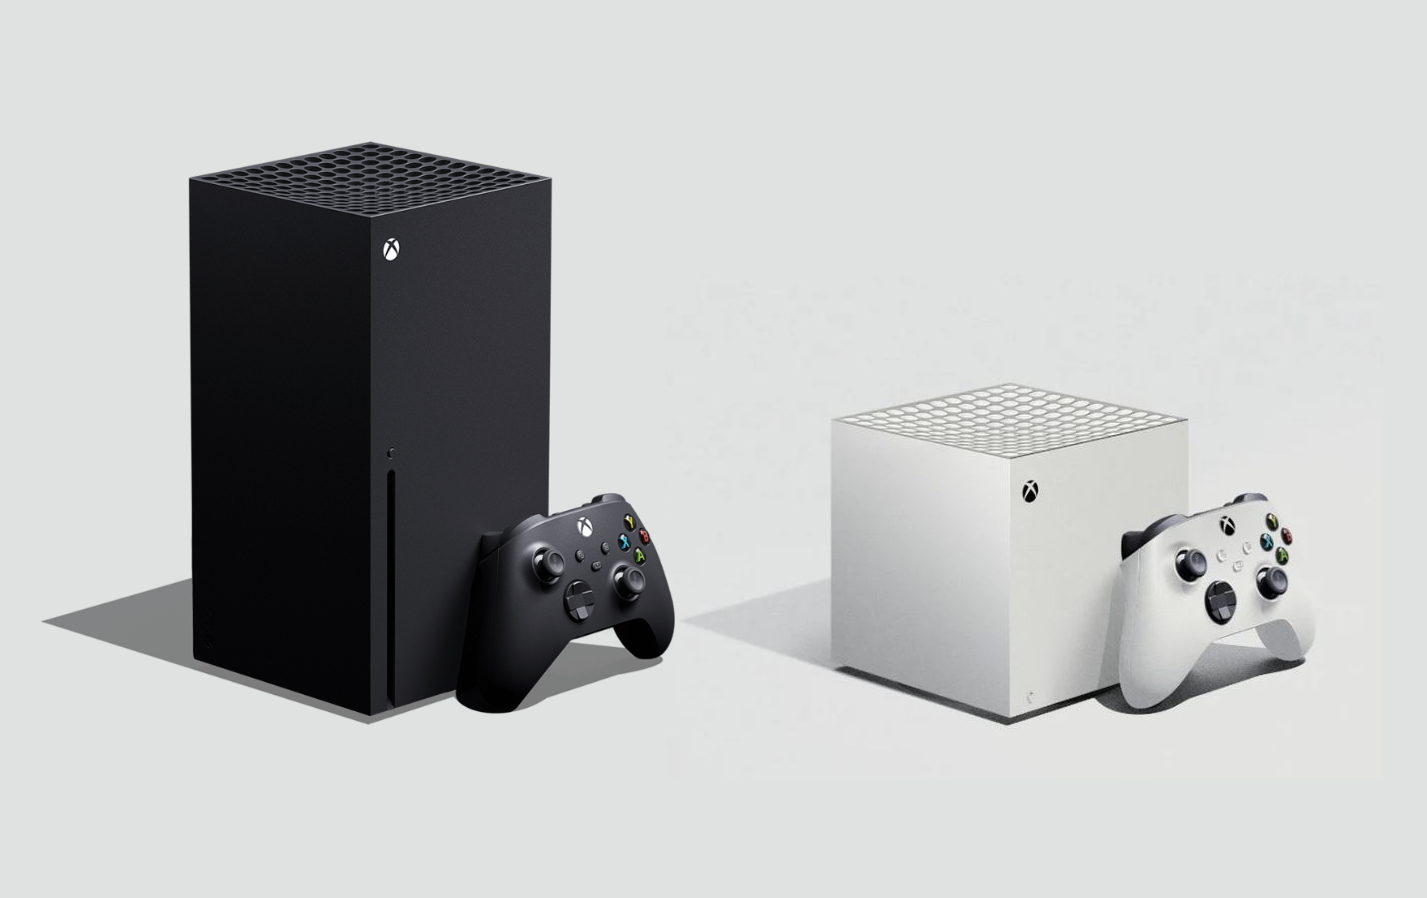 Respectable Rumour Posits That The Xbox Series S Will Be Closer To The Design Of The Xbox One Than The Xbox Series X Microsoft S Premier Next Generation Console Originally Had An August 2020